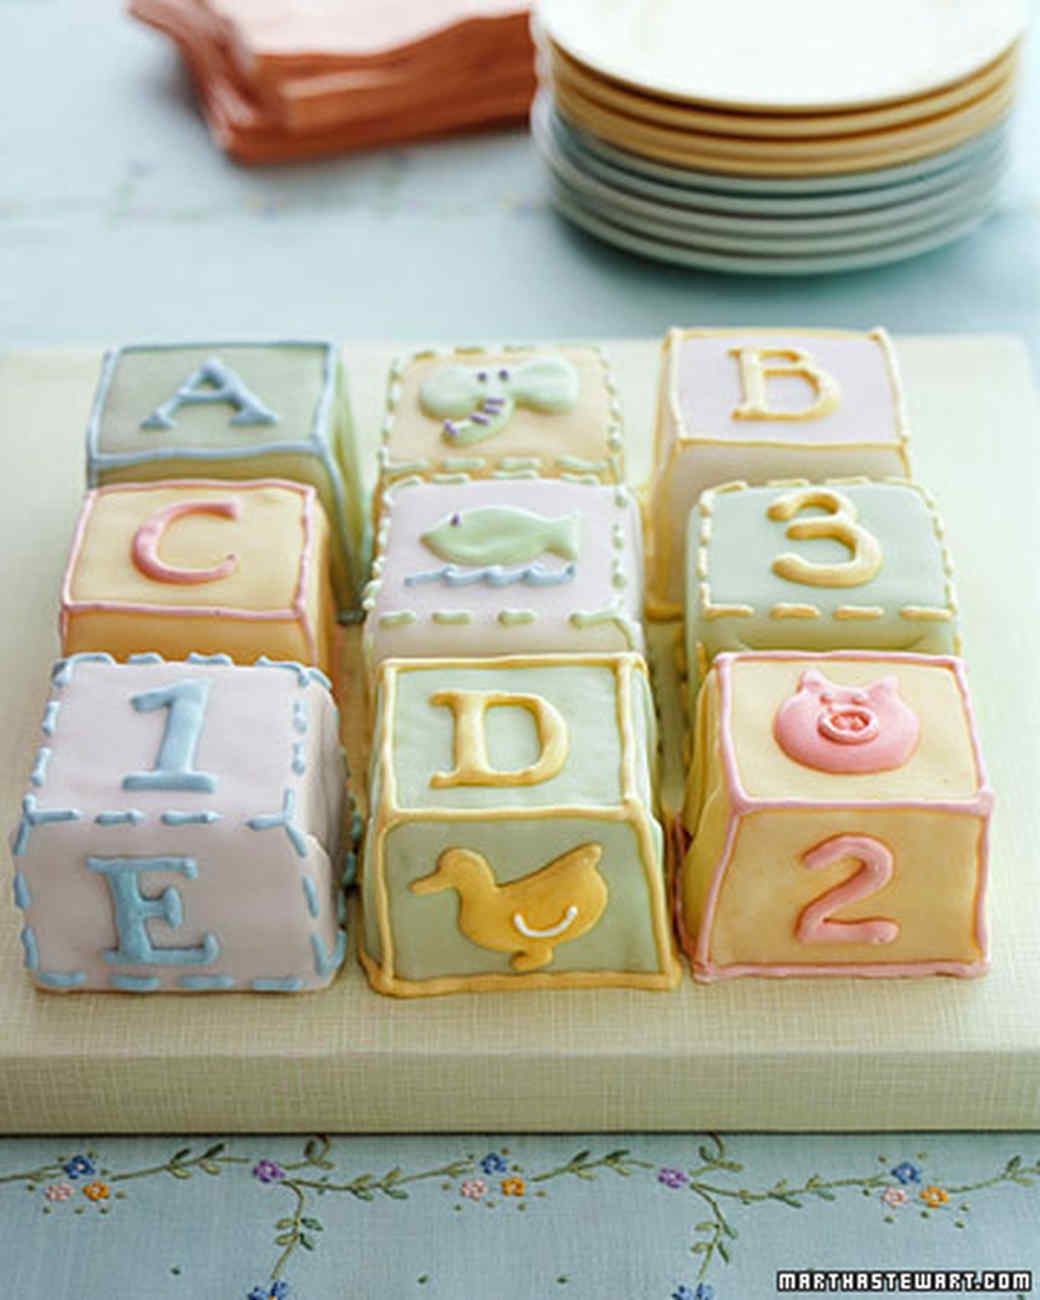 20 Best Decorating Good To Know Images On Pinterest: 6 Super Cute Ways To Reveal The Baby's Gender